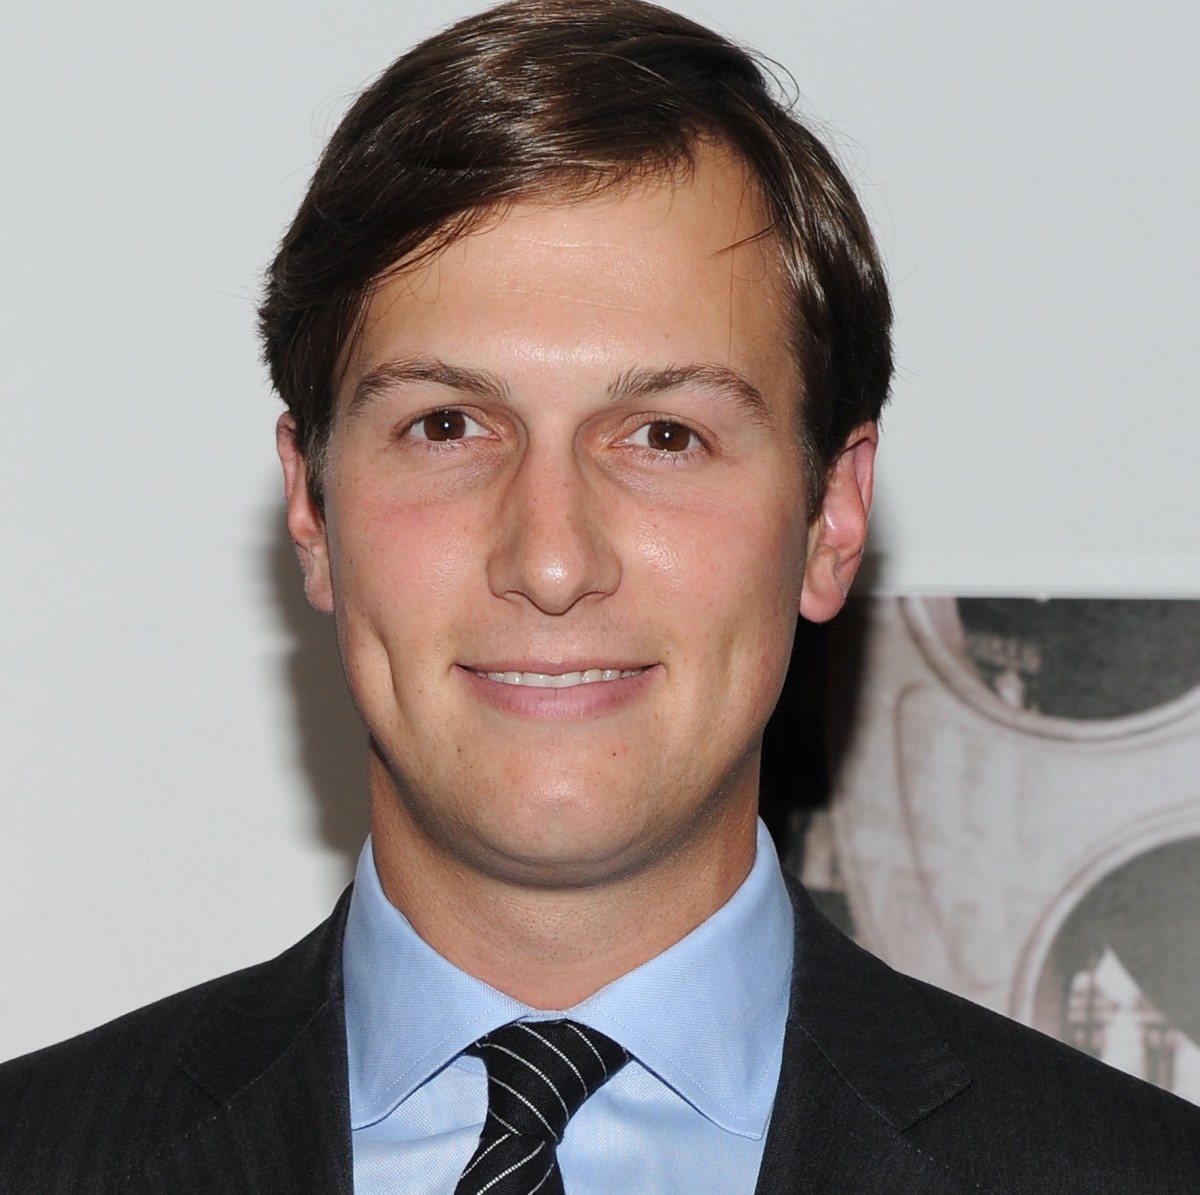 Jared kushner height Images